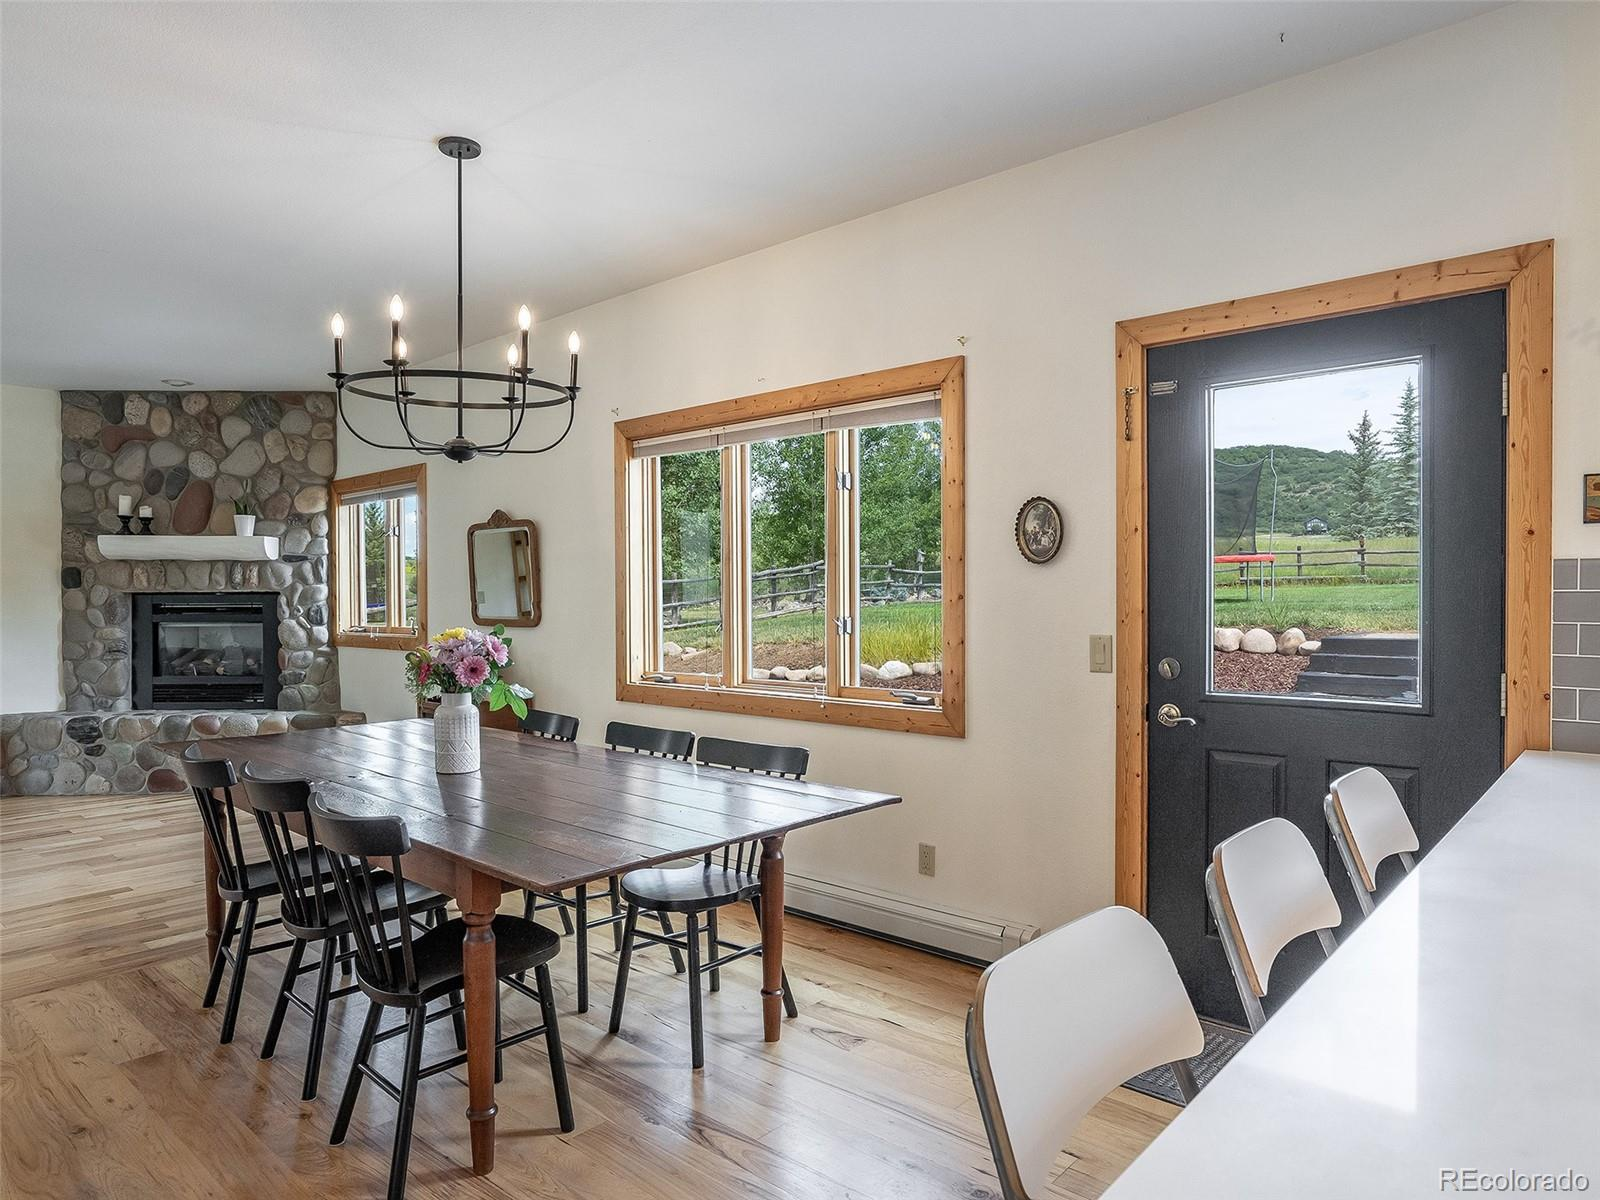 MLS# 2884564 - 8 - 27783 Silver Spur Street, Steamboat Springs, CO 80487